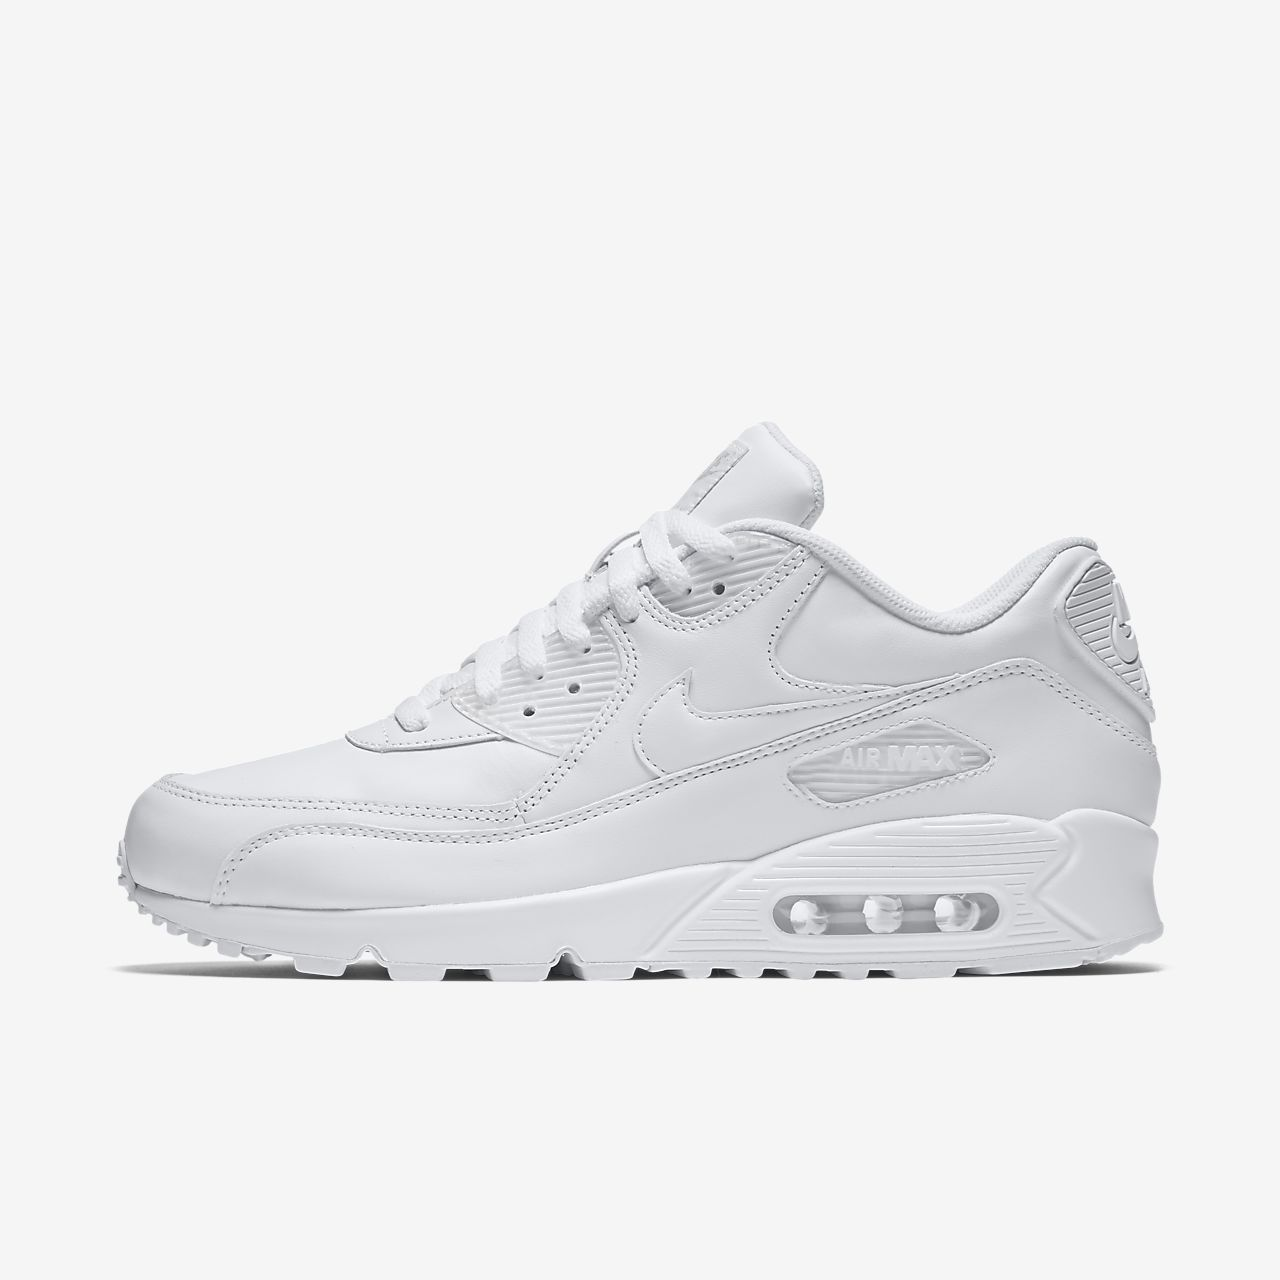 ... Nike Air Max 90 Leather Men's Shoe